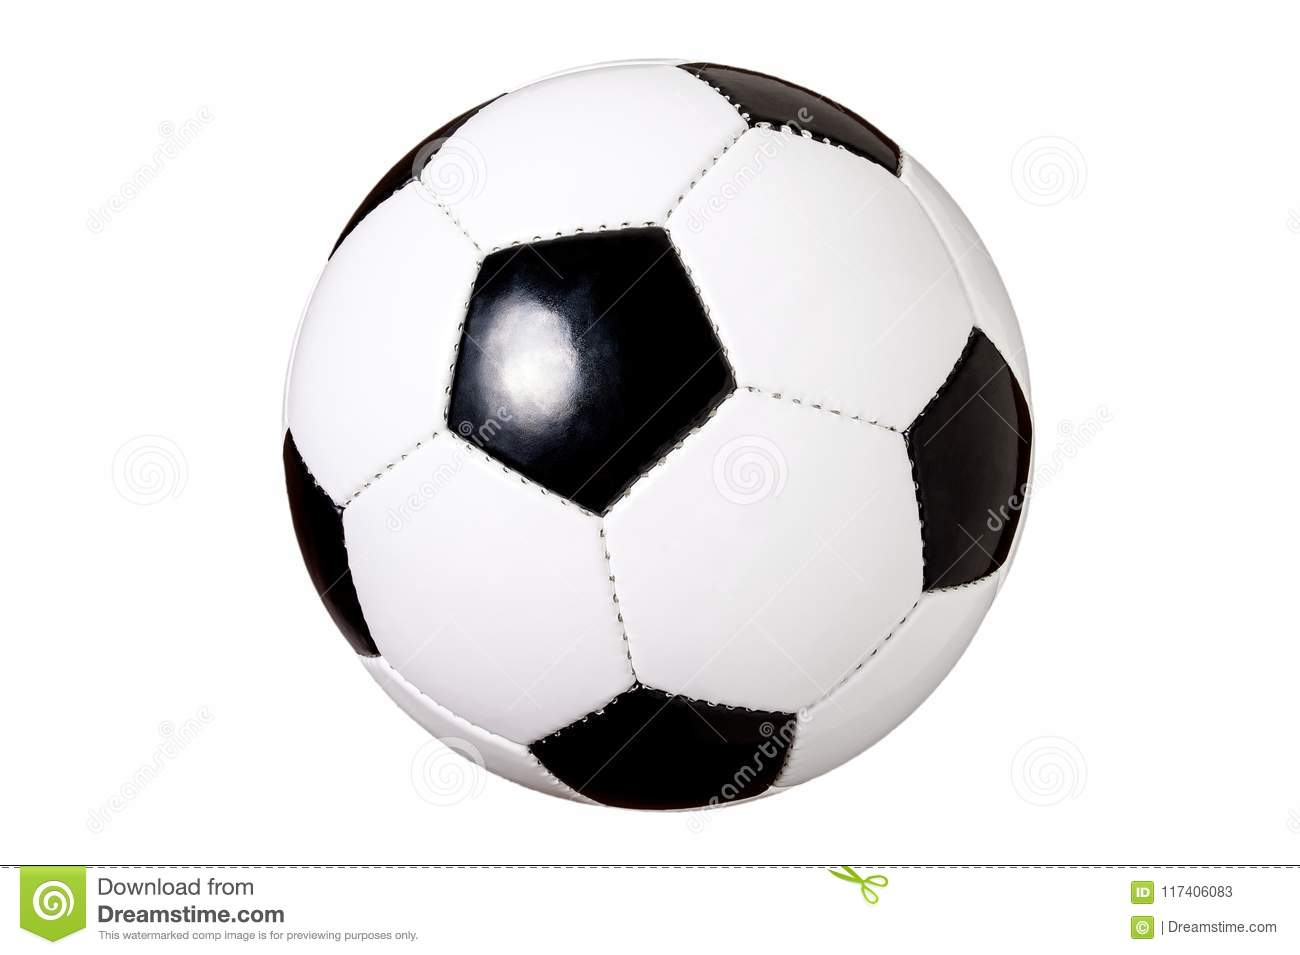 Soccer Ball Isolated, Cut Out, Black And White Classic Ball